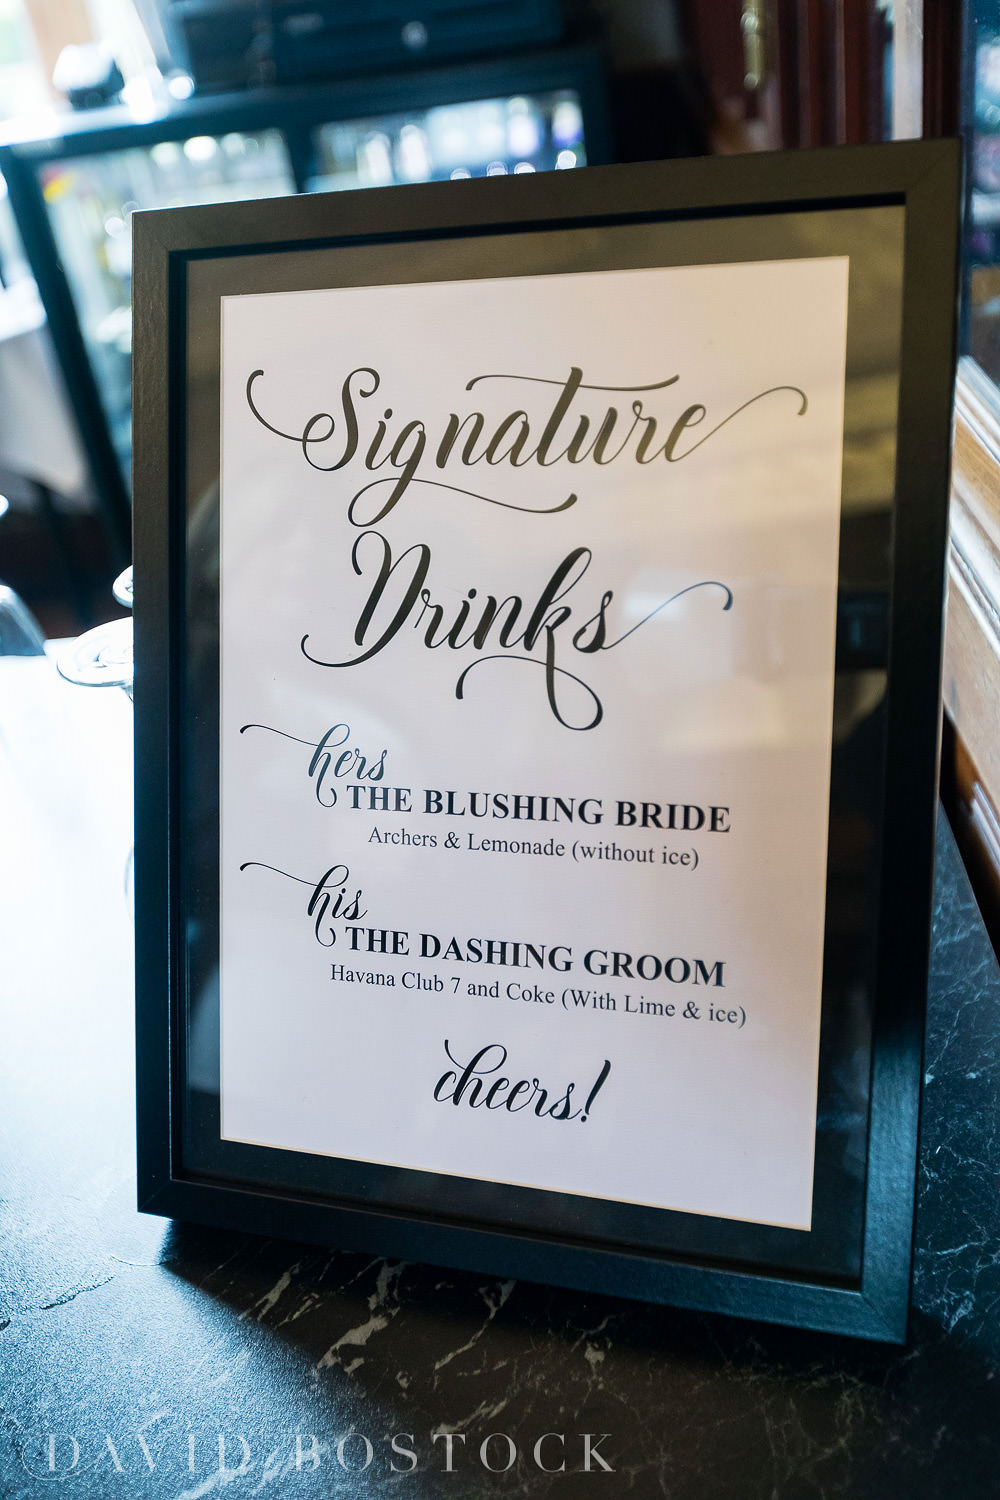 Eynsham Hall wedding photo signature drinks sign